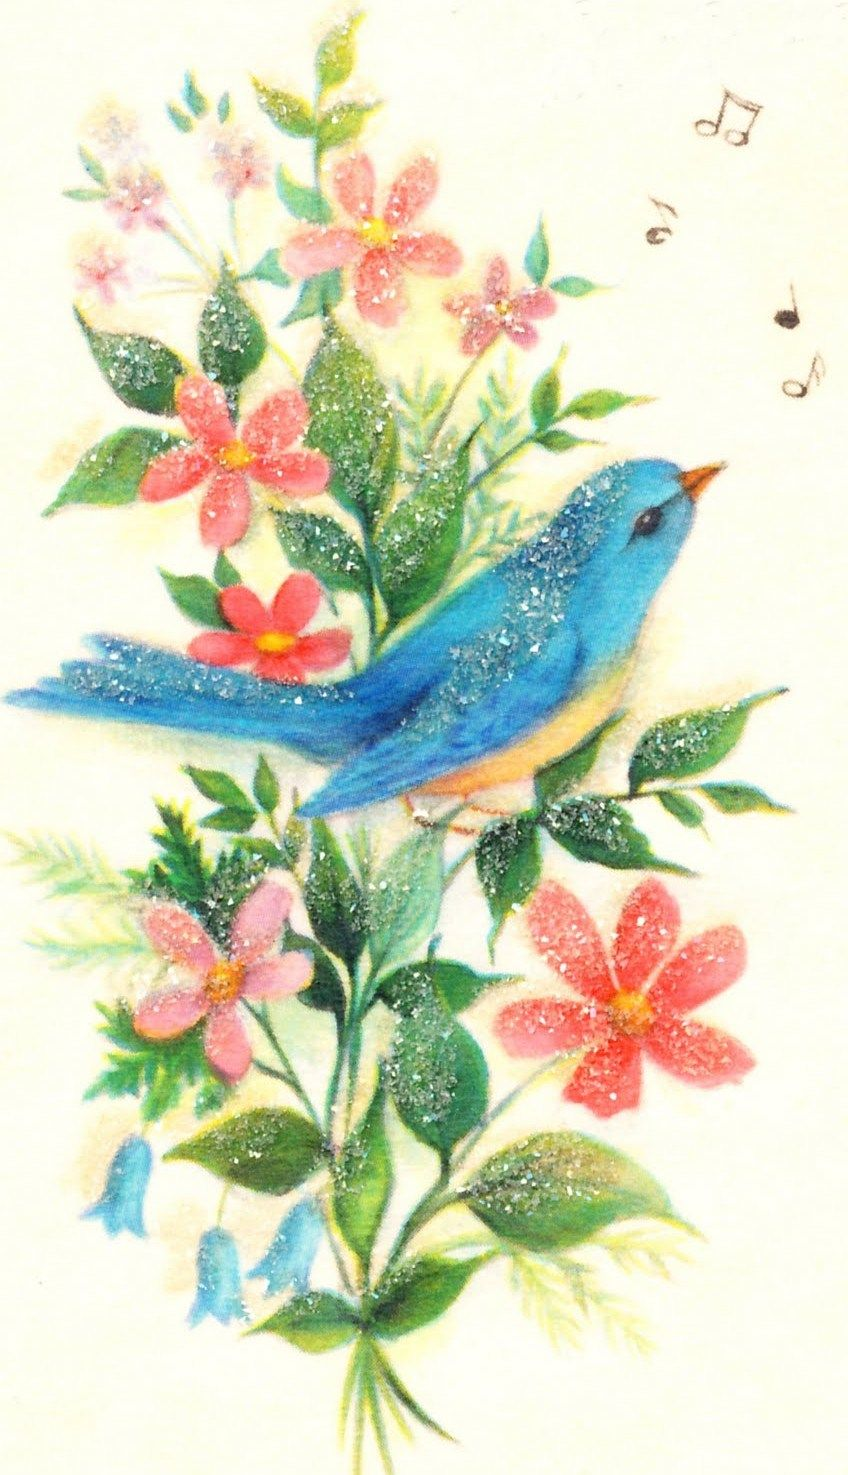 Vintage bluebird image i really must scan all grannys vintage vintage bluebird image i really must scan all grannys vintage greeting cards m4hsunfo Image collections